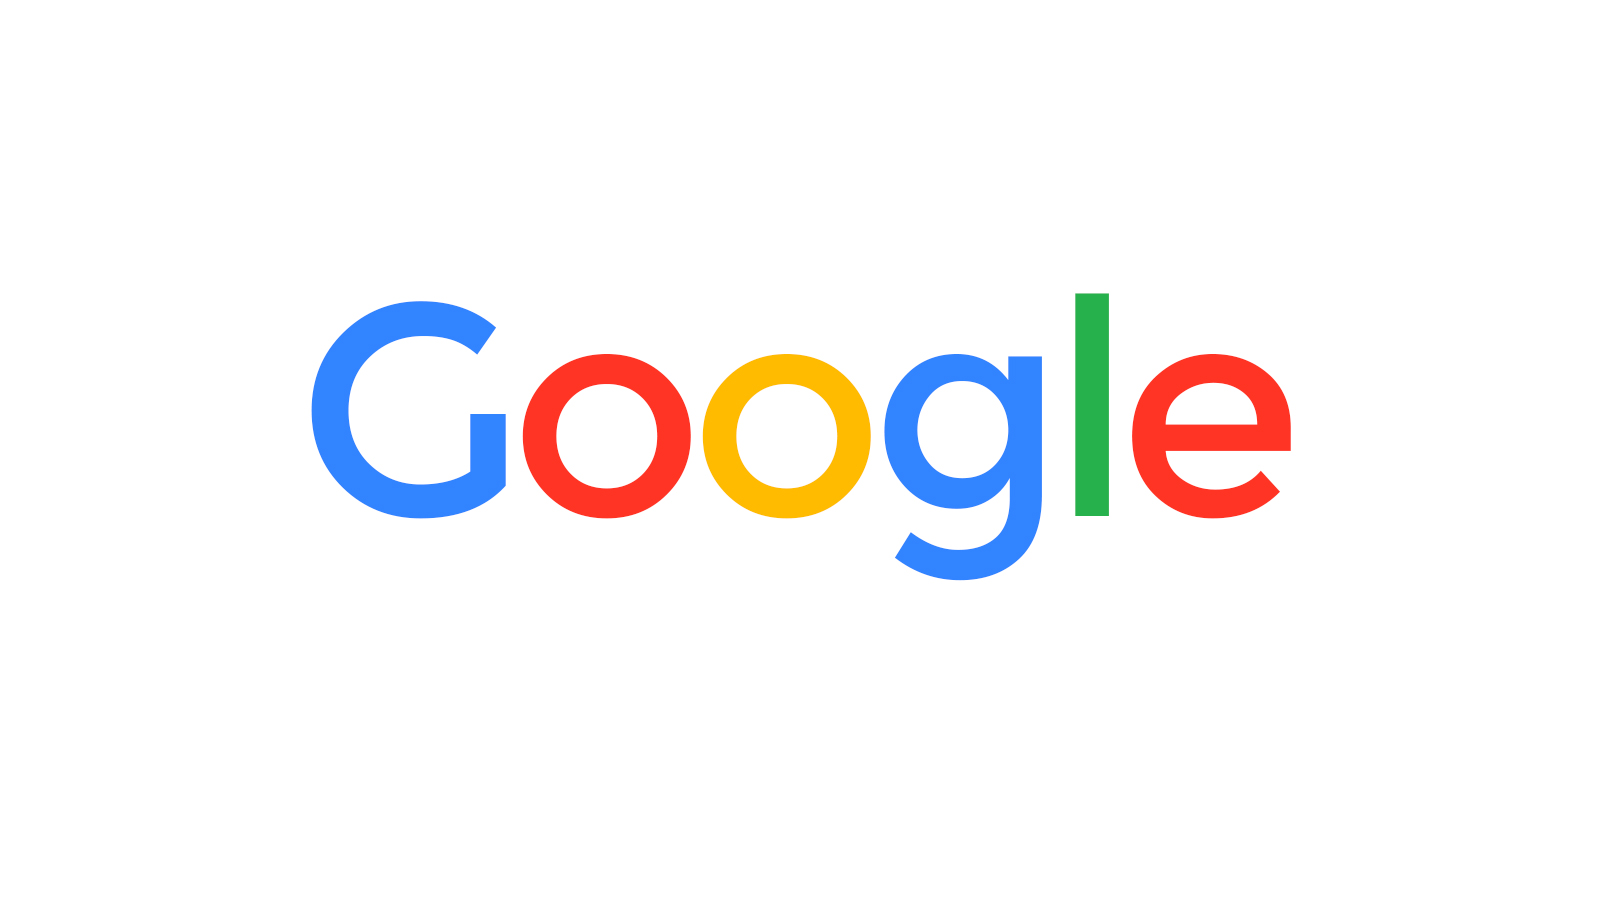 Is-Google-Searching-for-the-Next-Big-Thing1.jpg